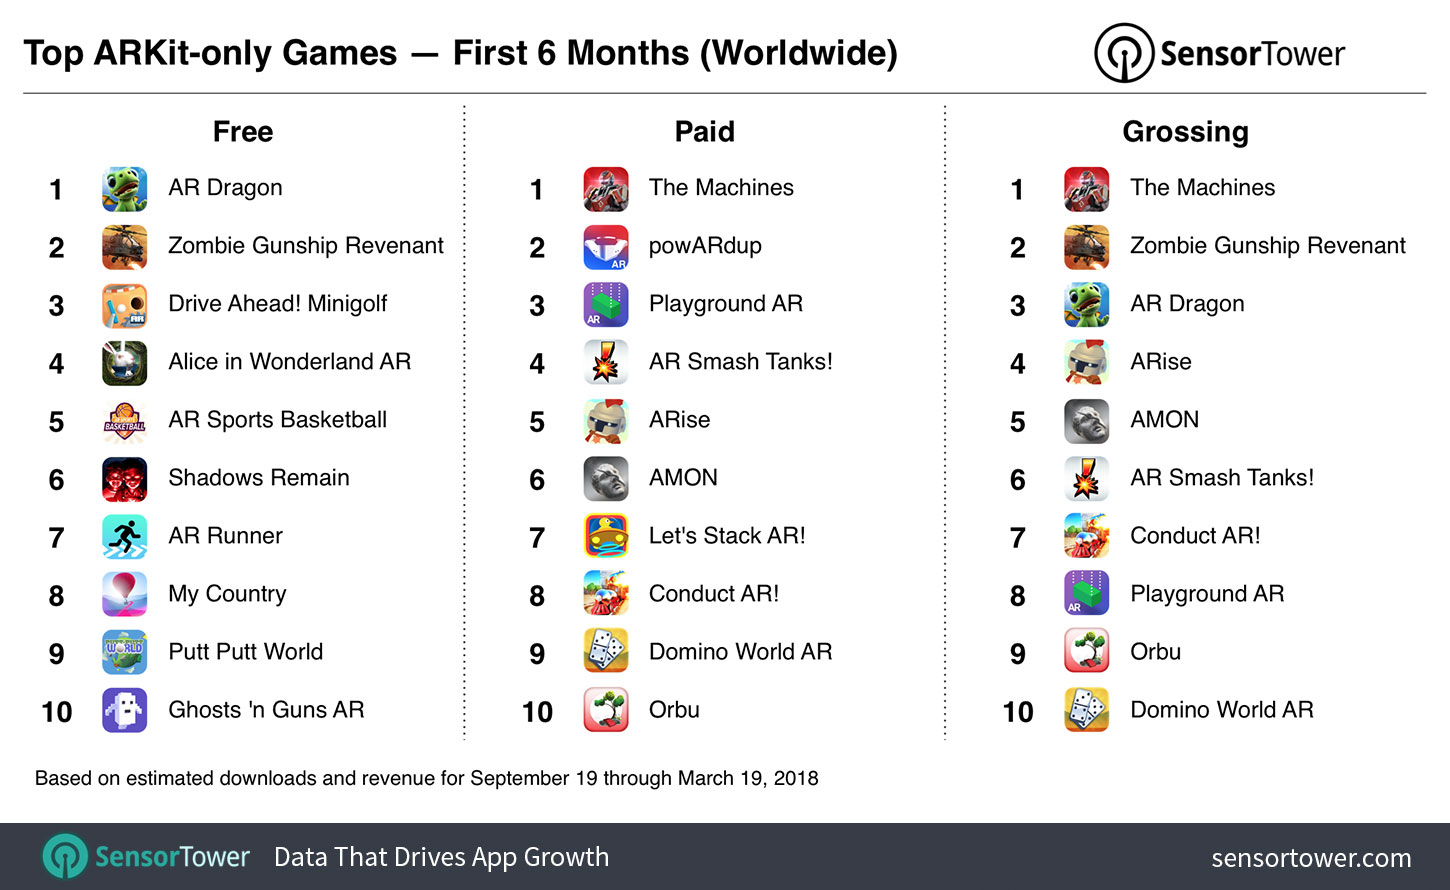 Ranking of top free, paid, and grossing ARKit mobile games overall for September 19, 2017 to March 19, 2018